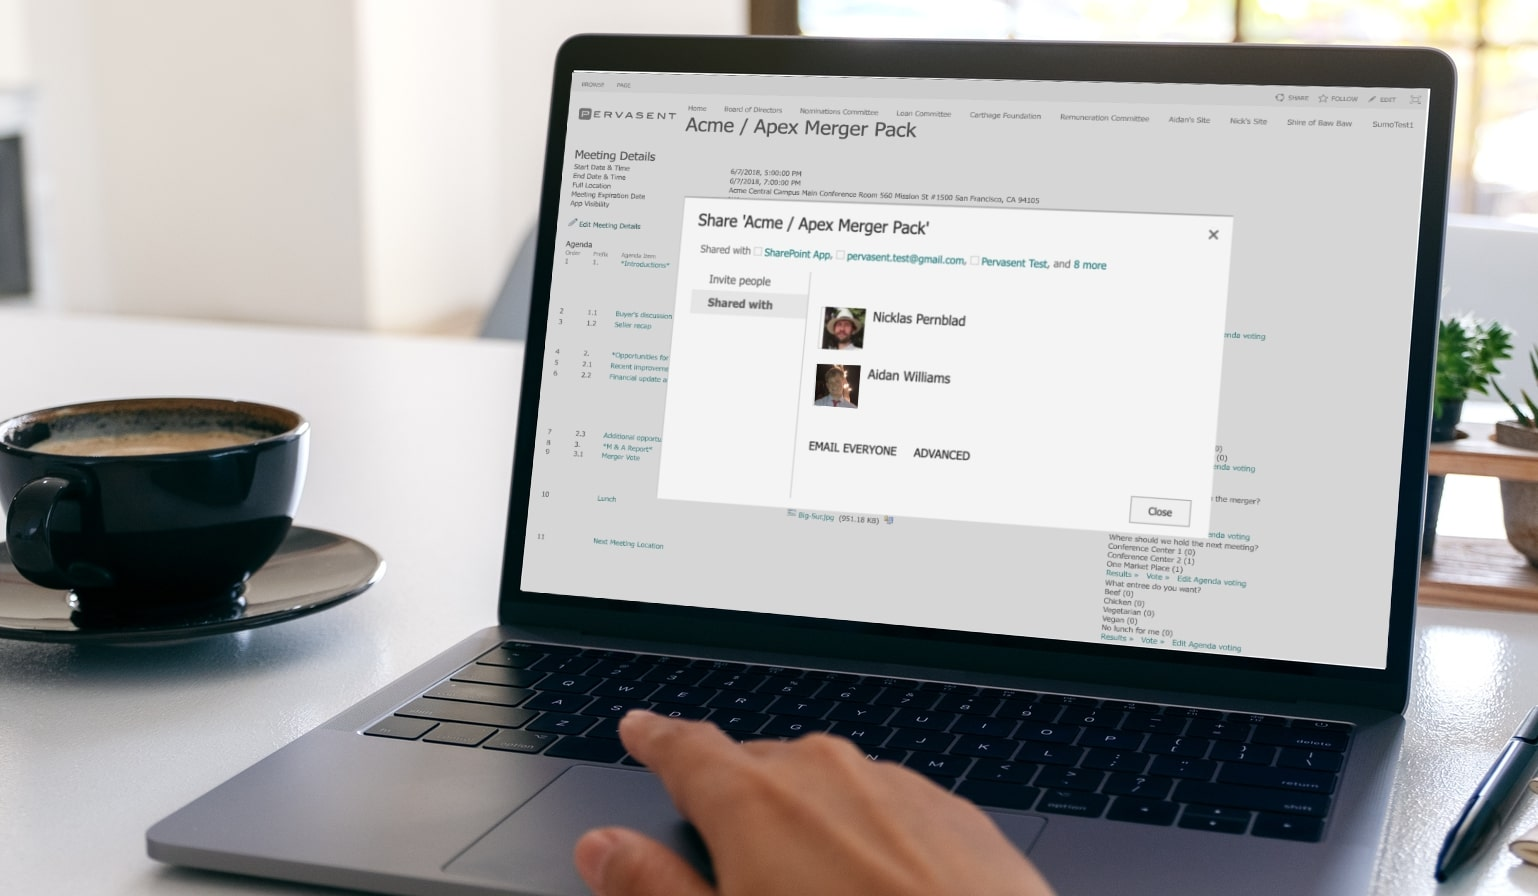 Easily share documents with specific team members or the whole group